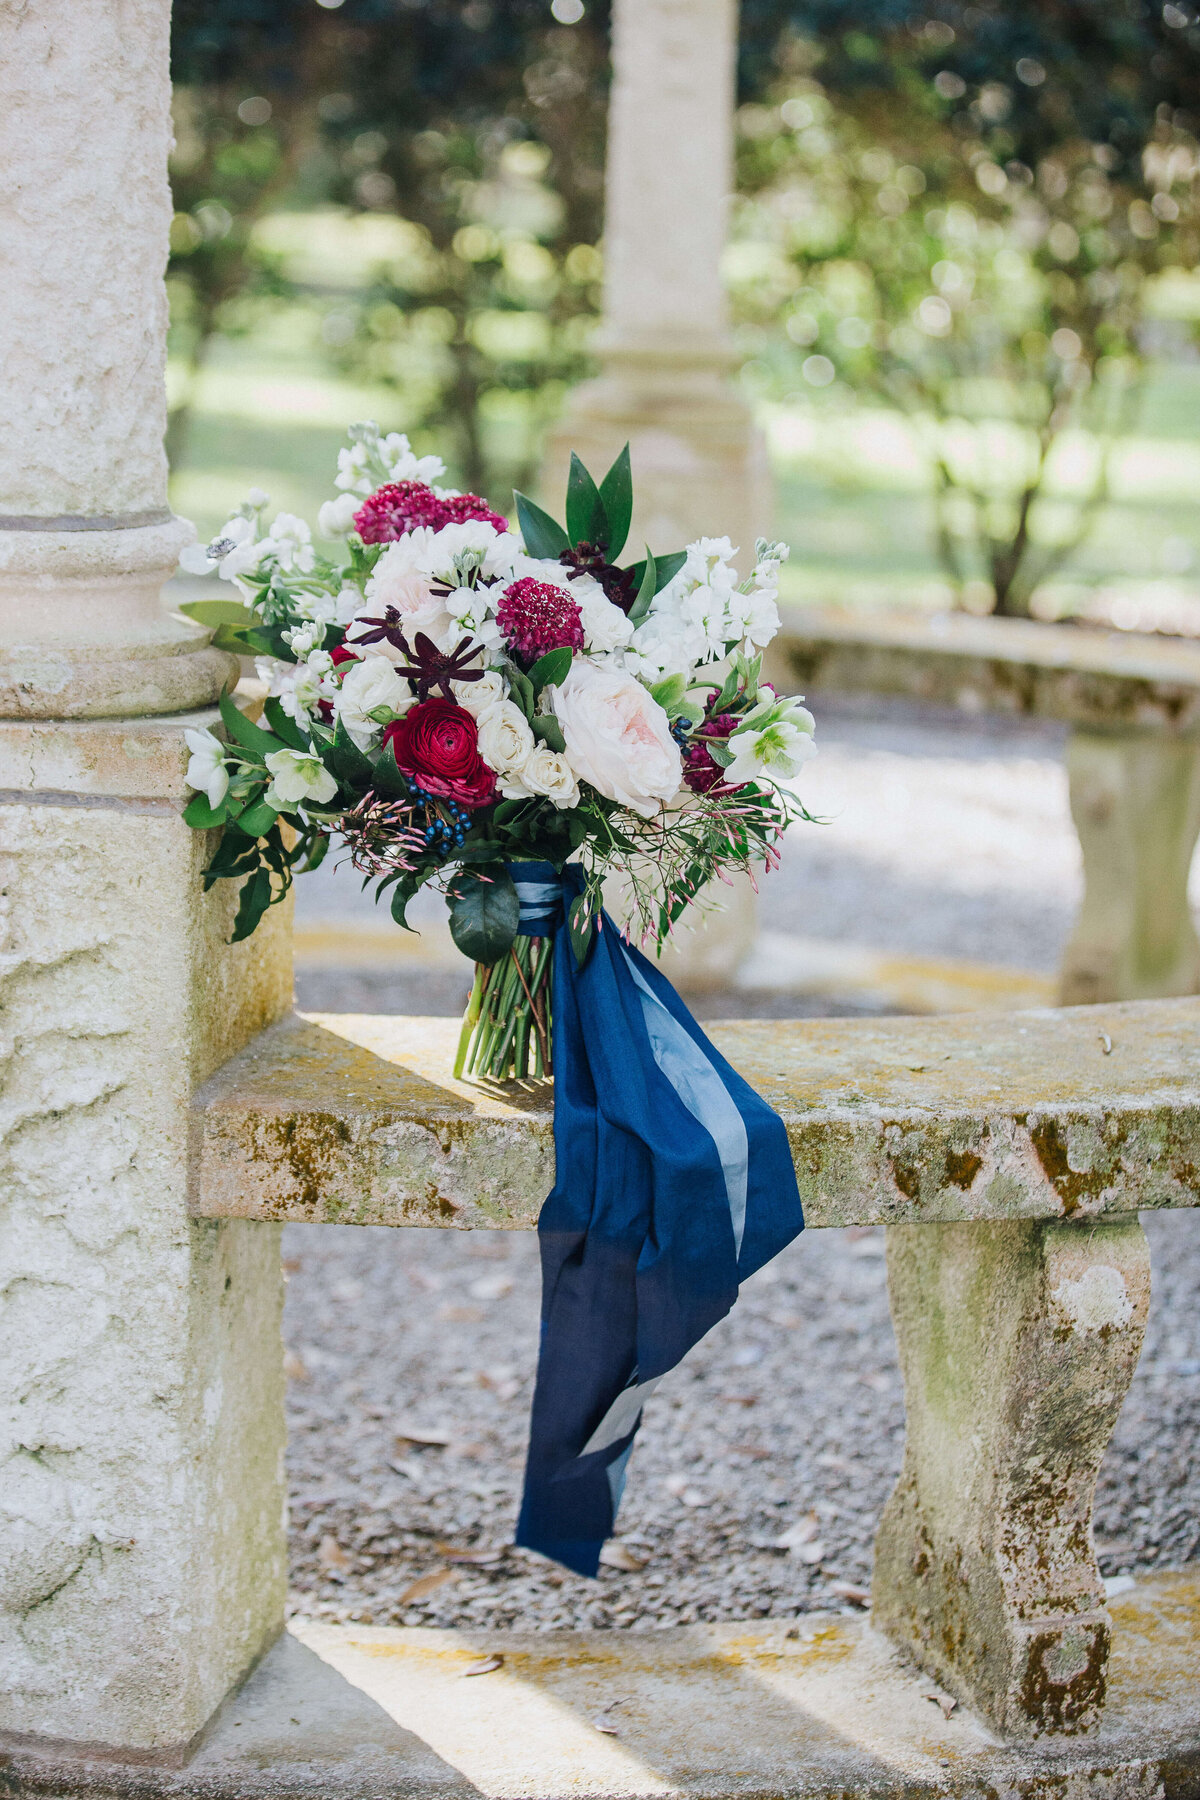 Wedding flowers by A to Zinnias